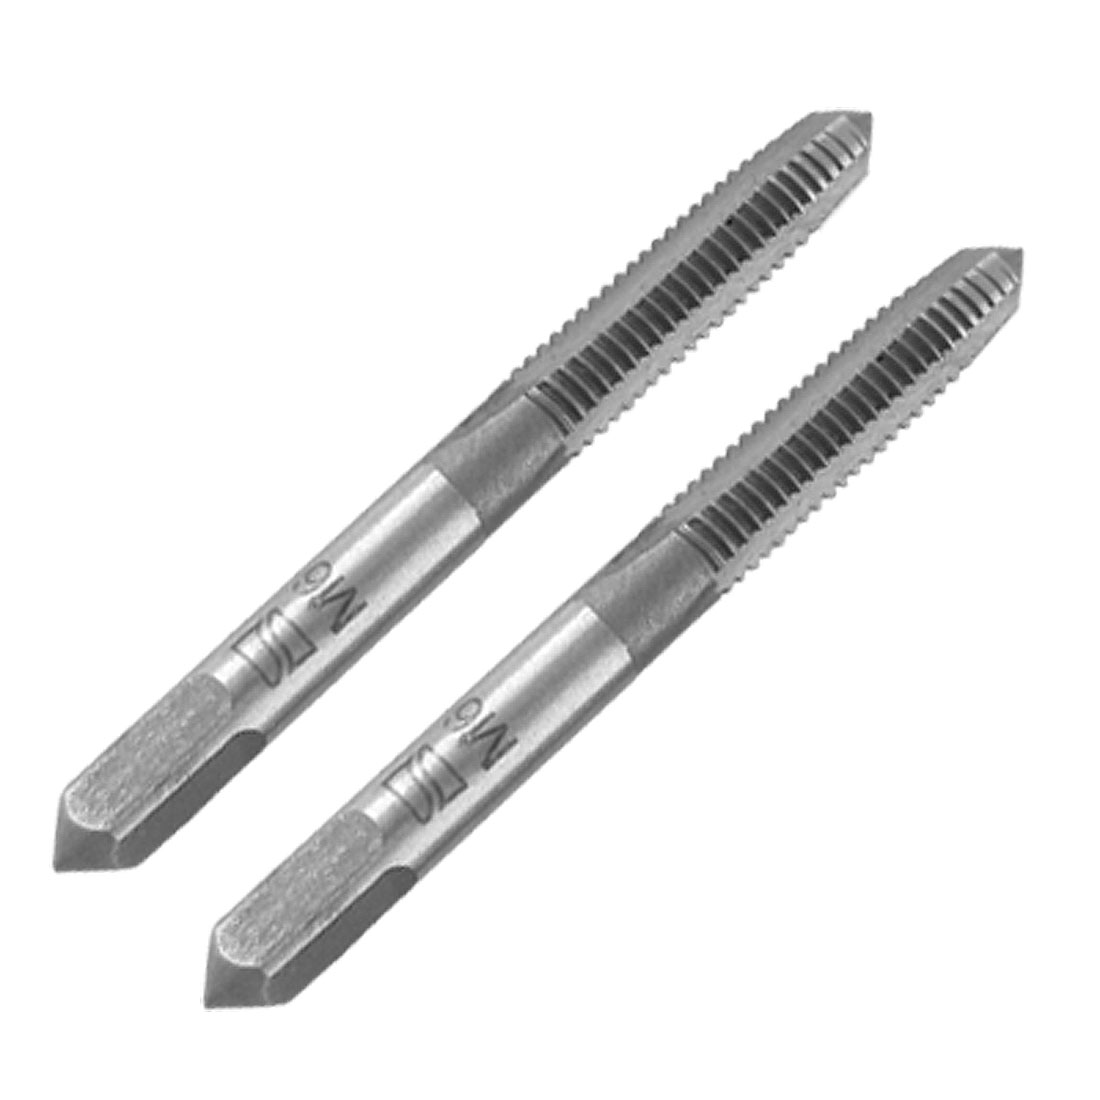 2pcs 6mm Dia. Straight Screw Flute Machine Taper Tap Drill Bit Tool